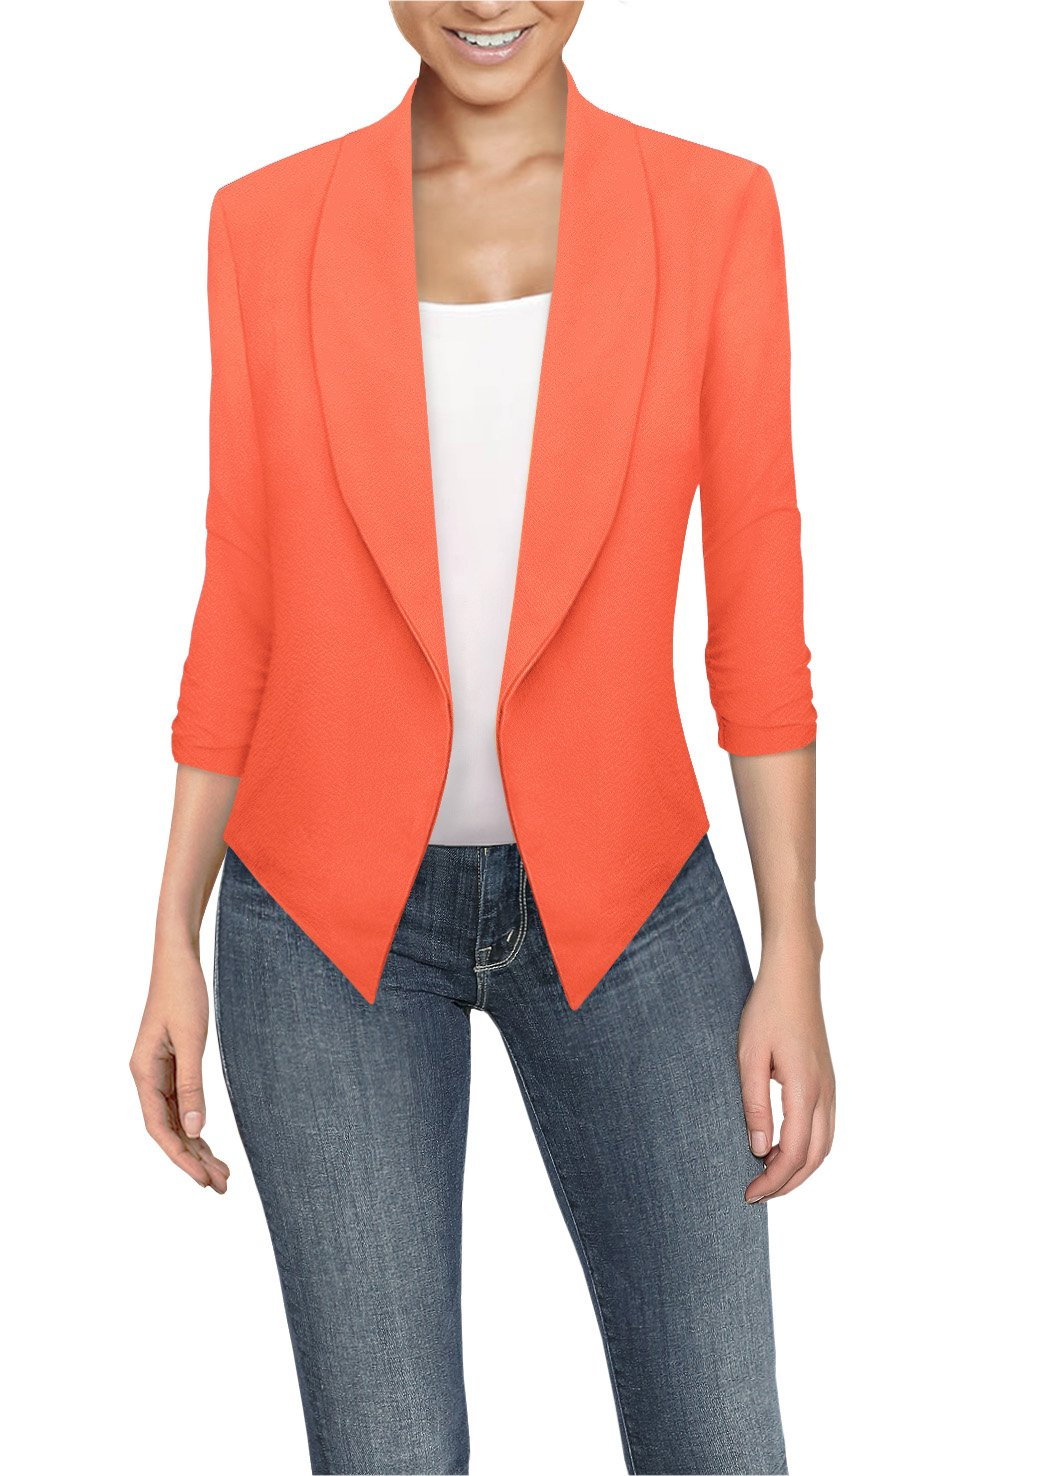 HyBrid & Company Womens Casual Work Office Open Front Blazer JK1133 Neon Coral XLarge